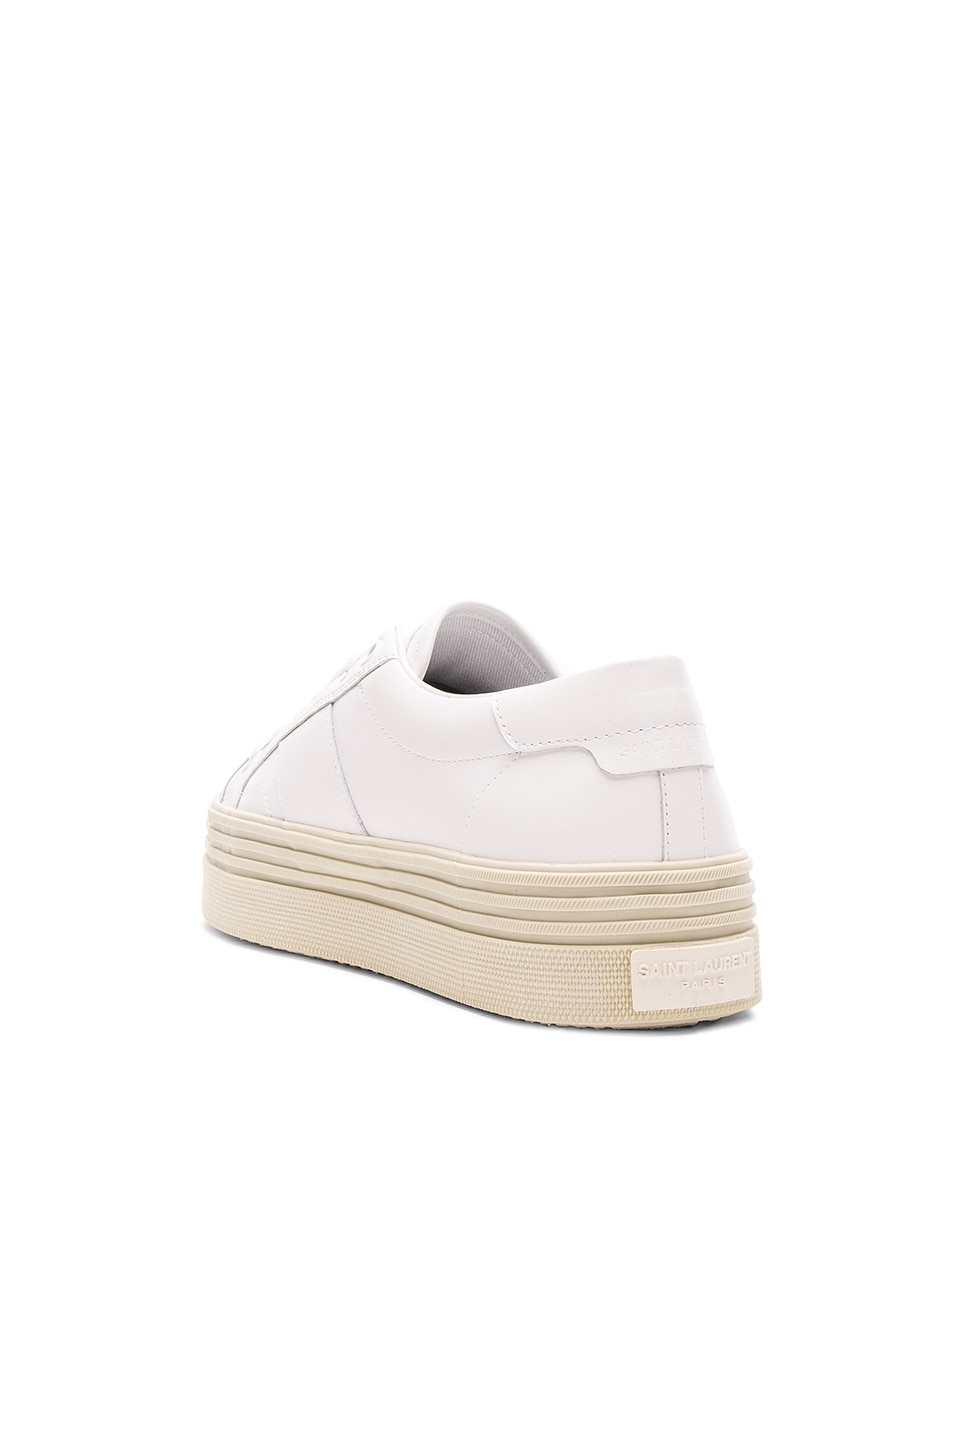 Image 3 of Saint Laurent Leather Court Classic Platform Sneakers in Off White